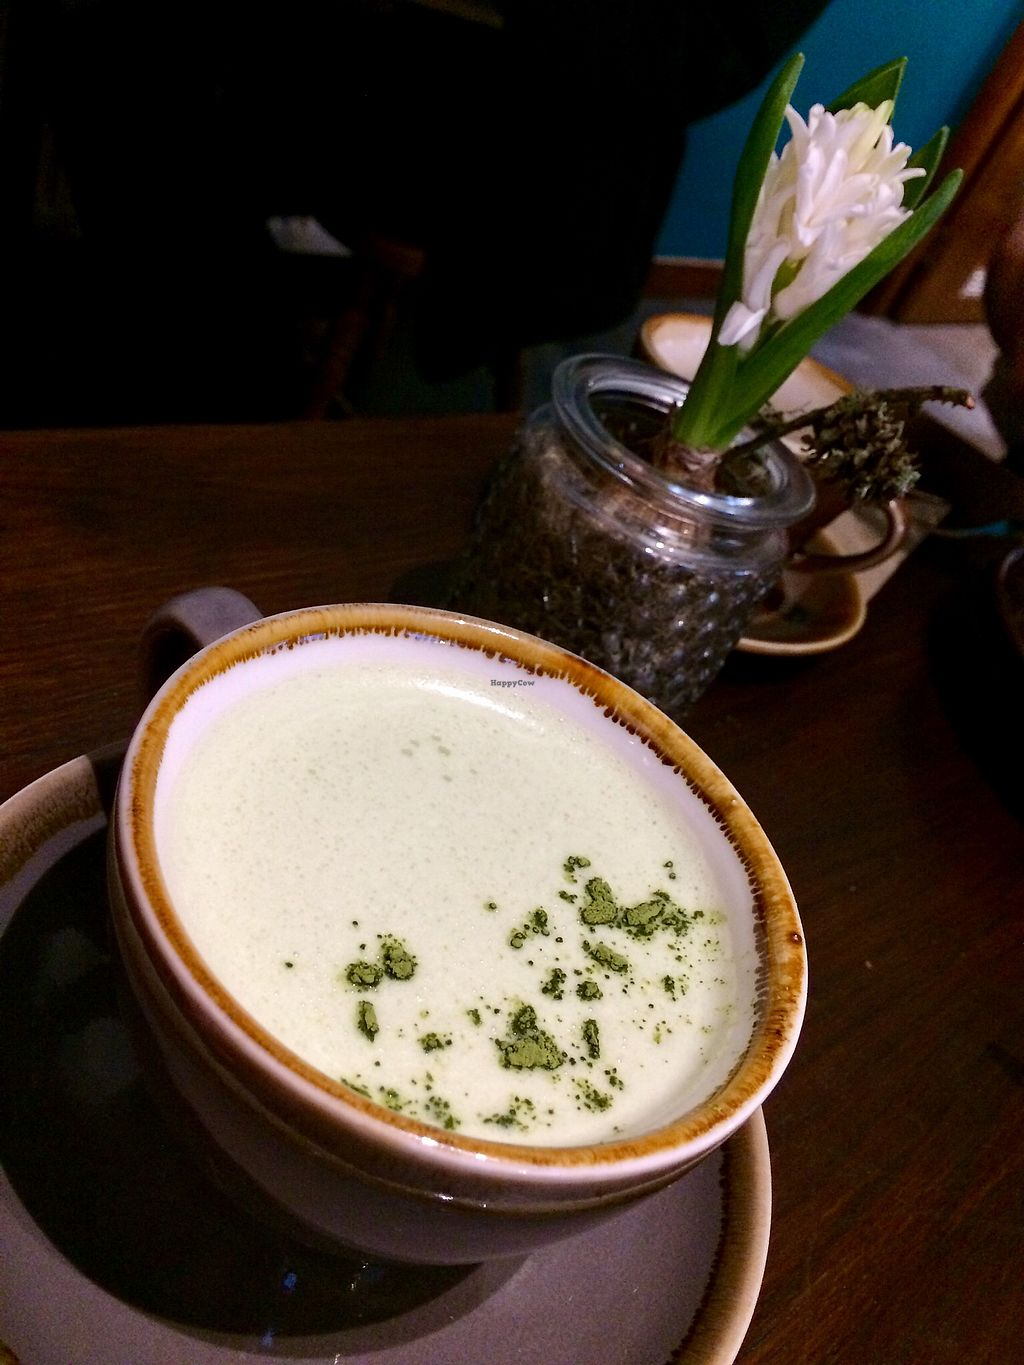 """Photo of Bonobo Cafe  by <a href=""""/members/profile/Chnanis"""">Chnanis</a> <br/>Matcha Latte <br/> January 13, 2018  - <a href='/contact/abuse/image/71220/346109'>Report</a>"""